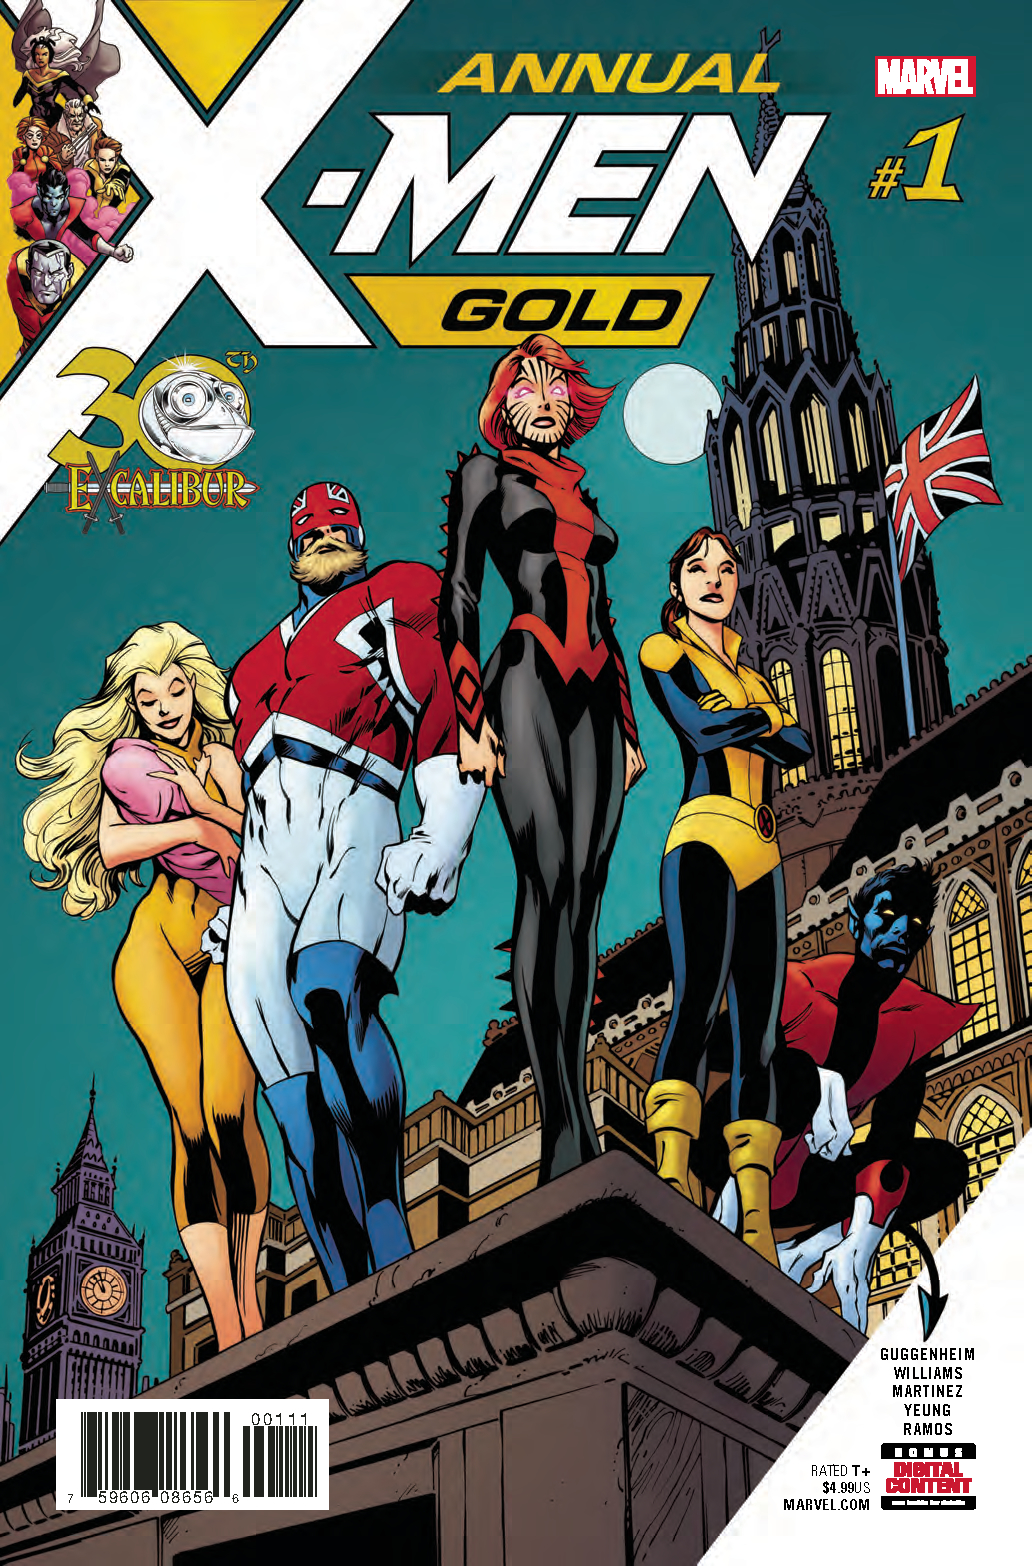 X-MEN GOLD ANNUAL #1 LEG